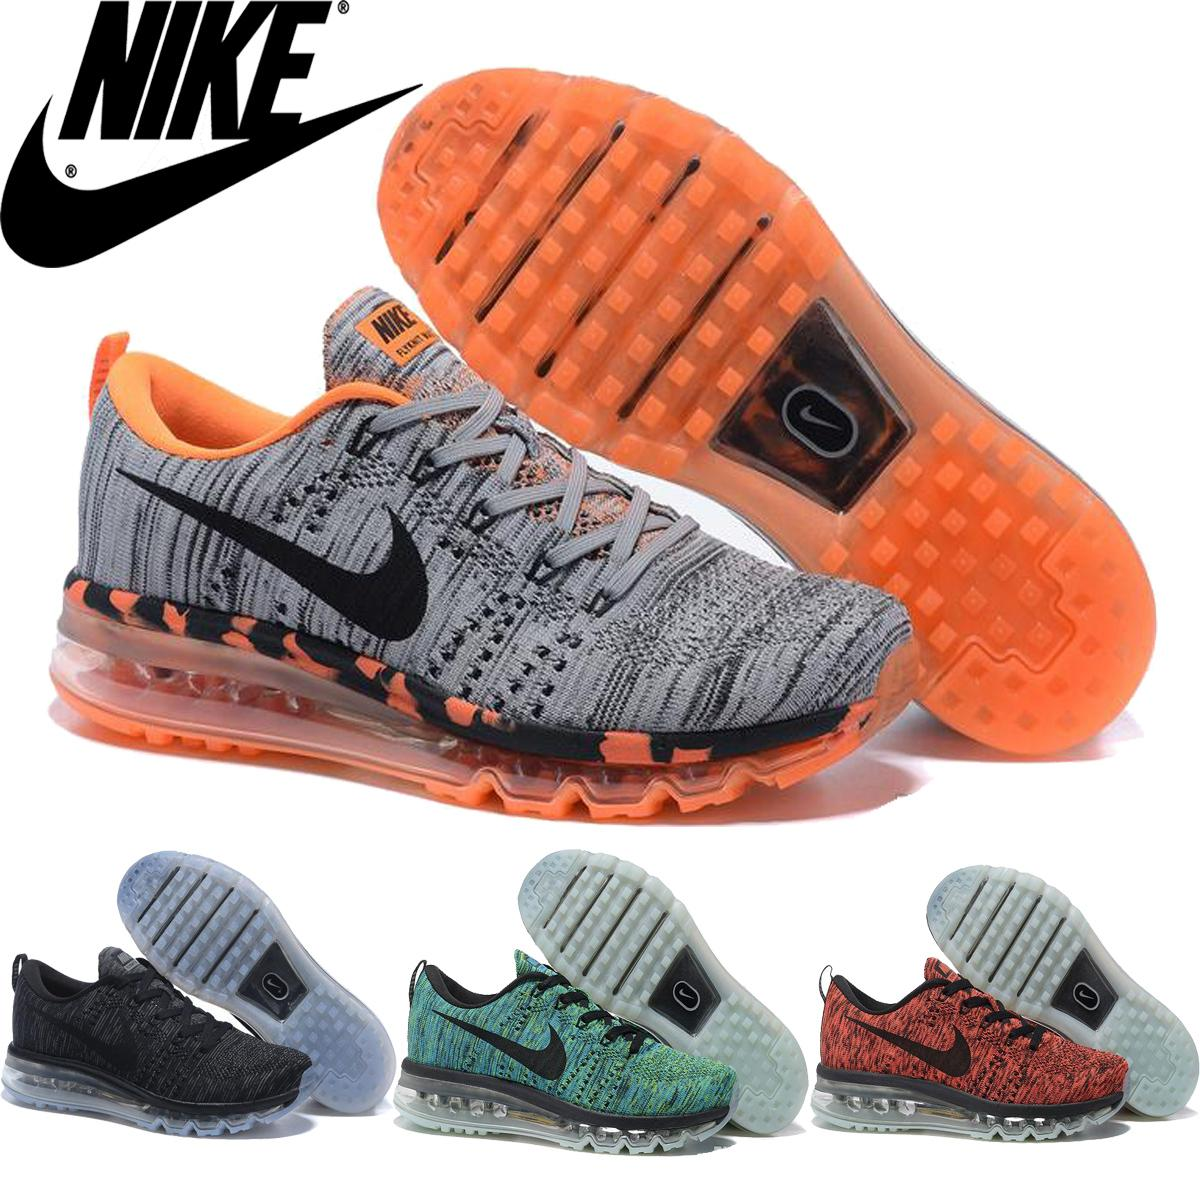 Nike Flyknit Air Max 2016 Premium Men'S Women'S Running Shoes,Original Quality Nike Airmax Flyknit Maxes For Men Women Sports Sneakers Shoes Shop Free